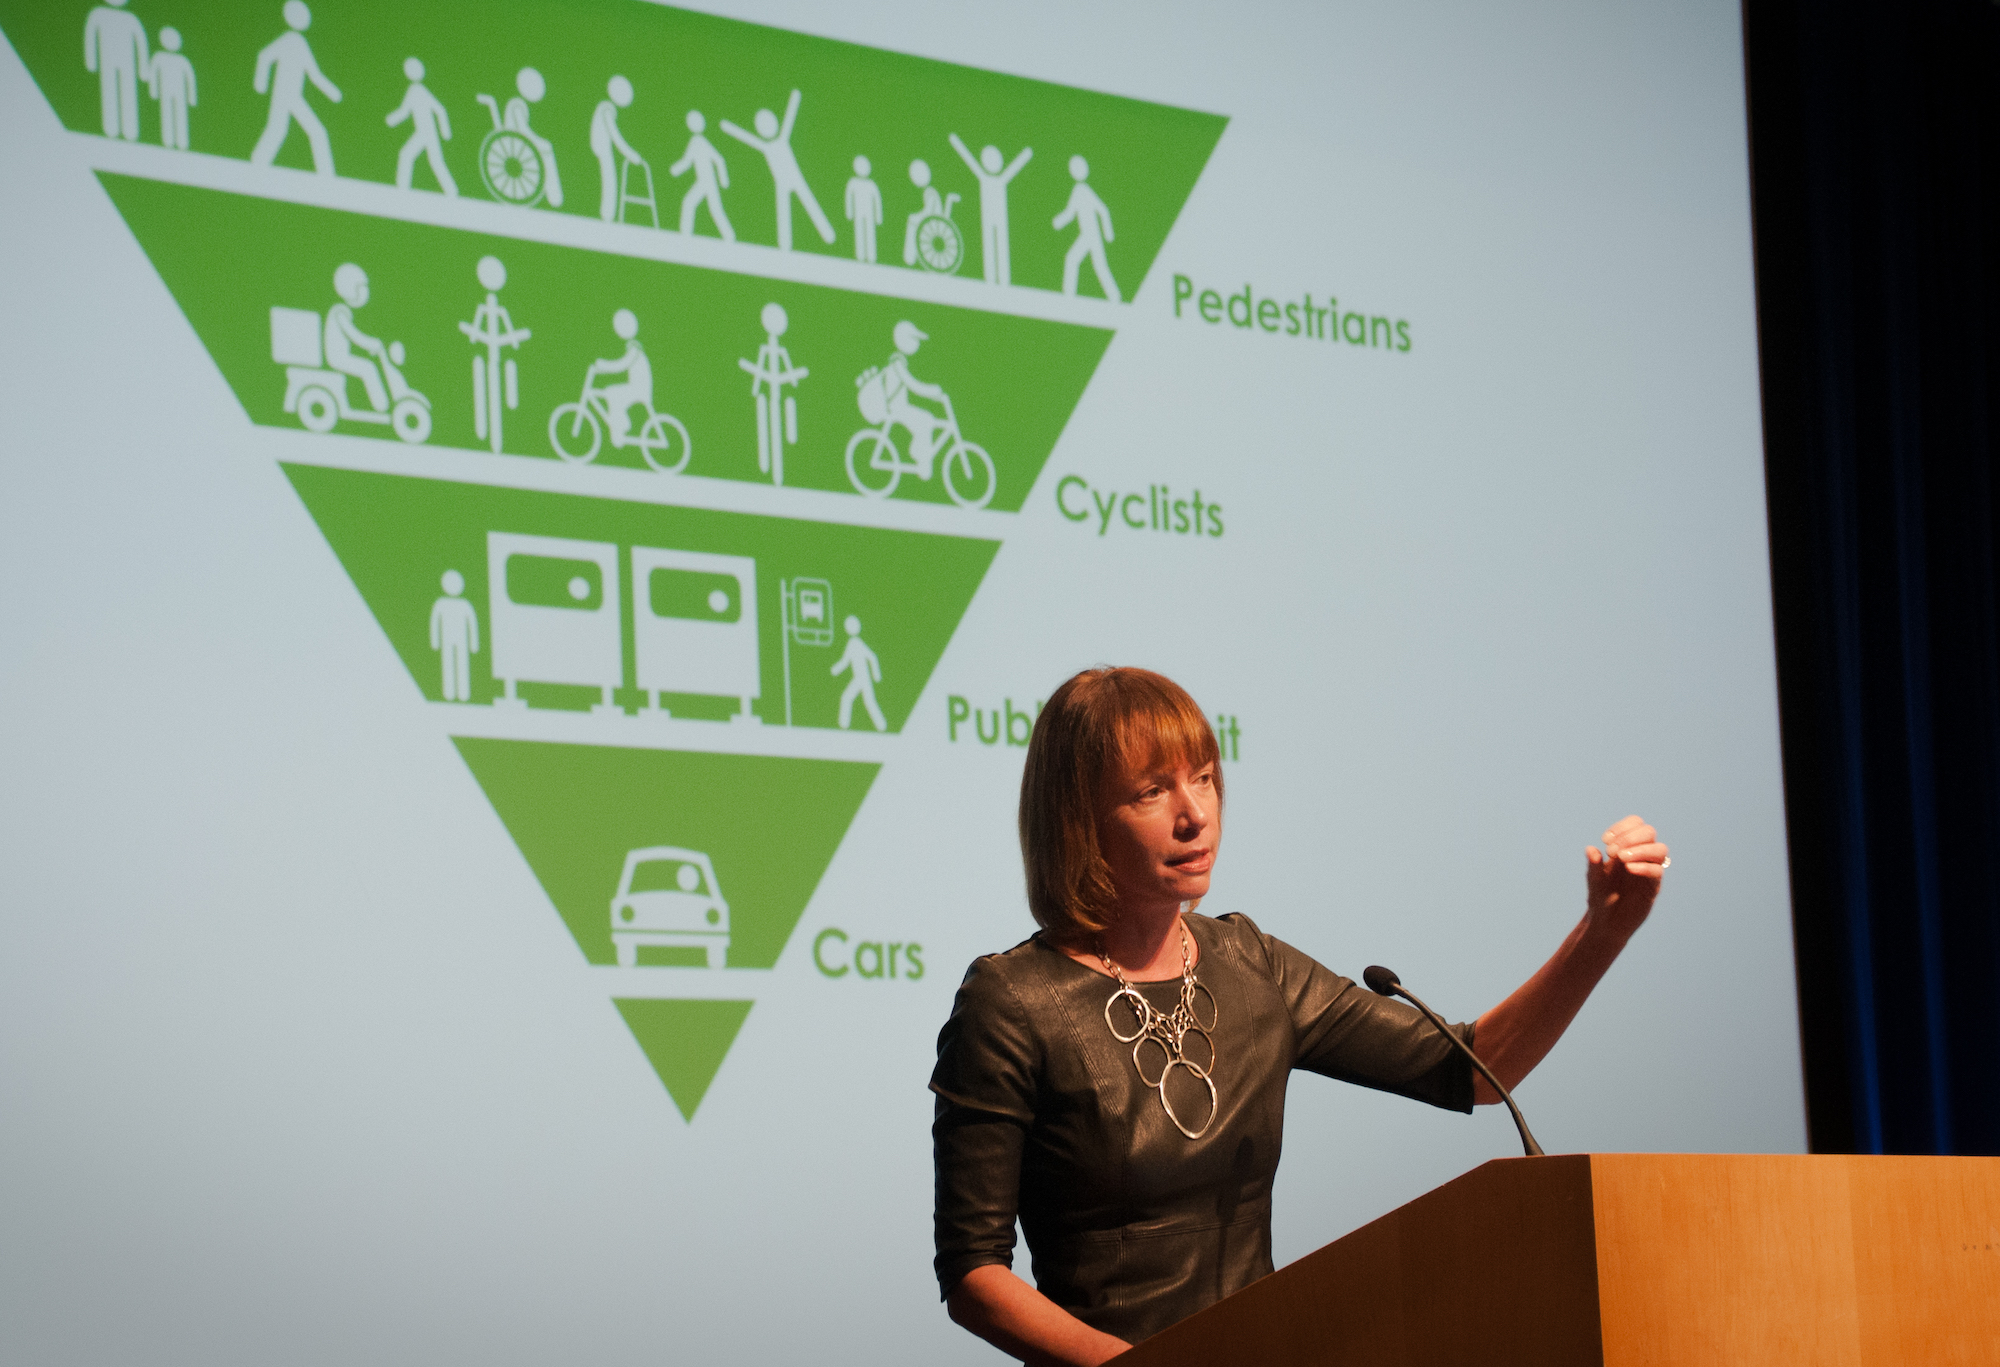 Janette Sadik-Khan speaking at the Transforming Transportation 2015 conference.